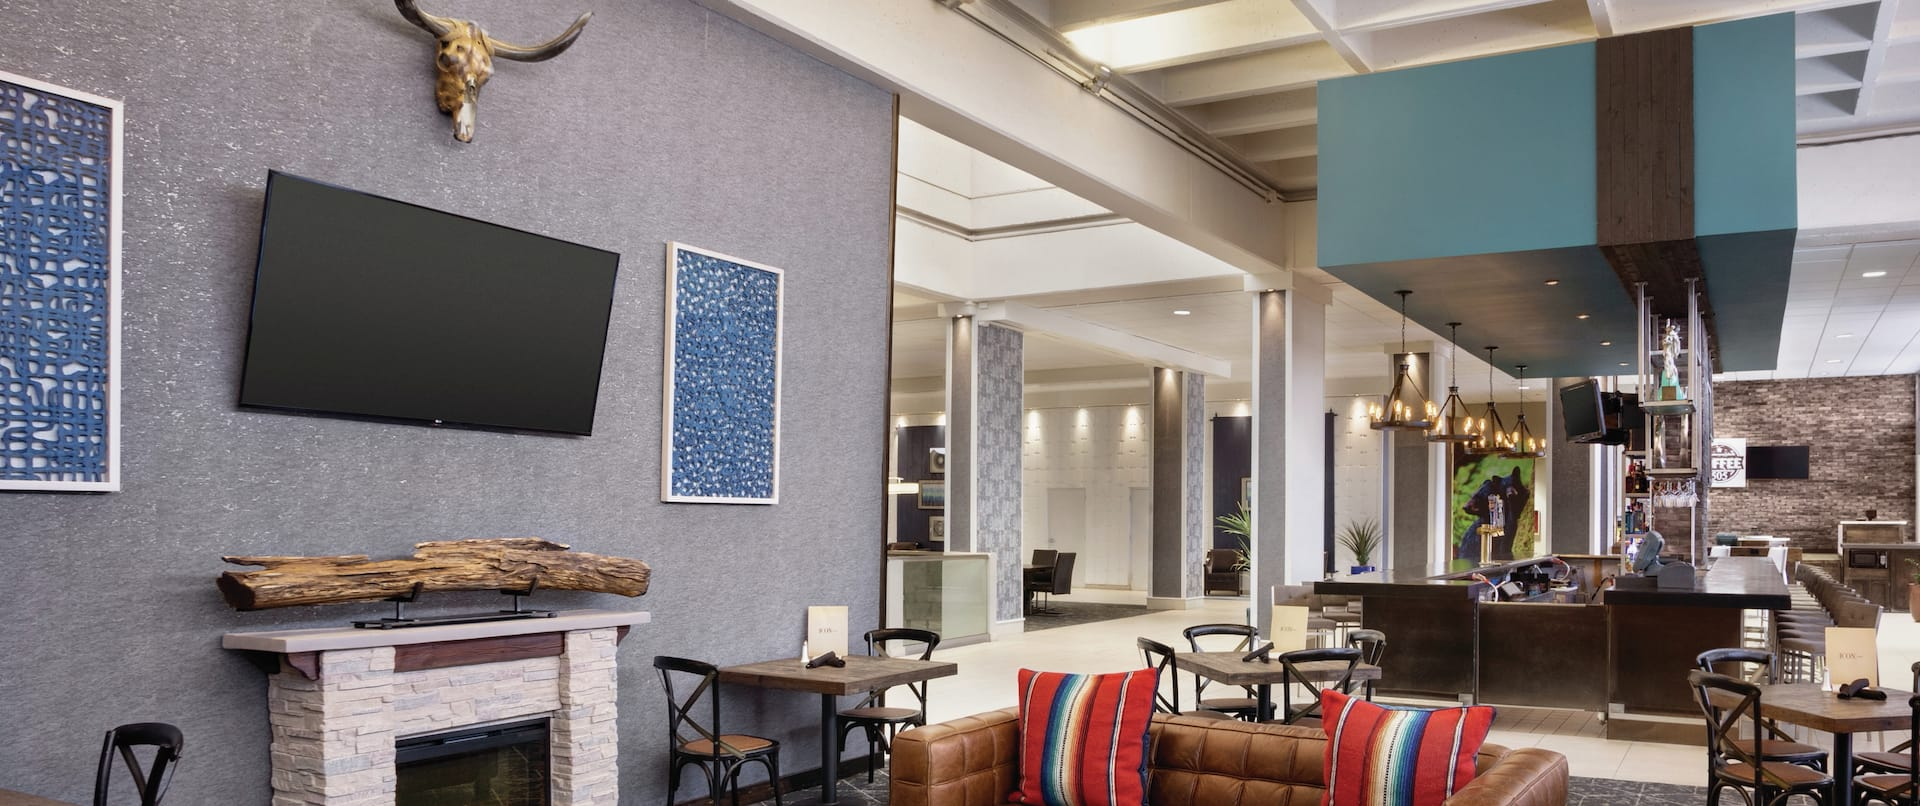 Bar Lounge Seating Area with Sofas, Fireplace and Wall Mounted HDTV